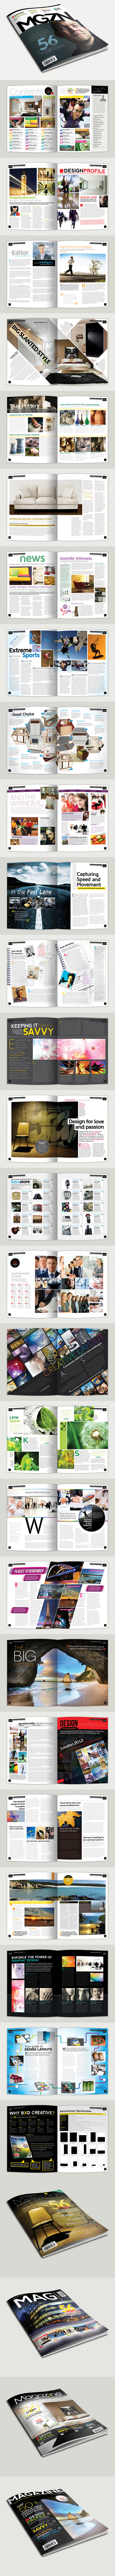 Magazine Template - InDesign 56 Page Layout by BoxedCreative , via ...